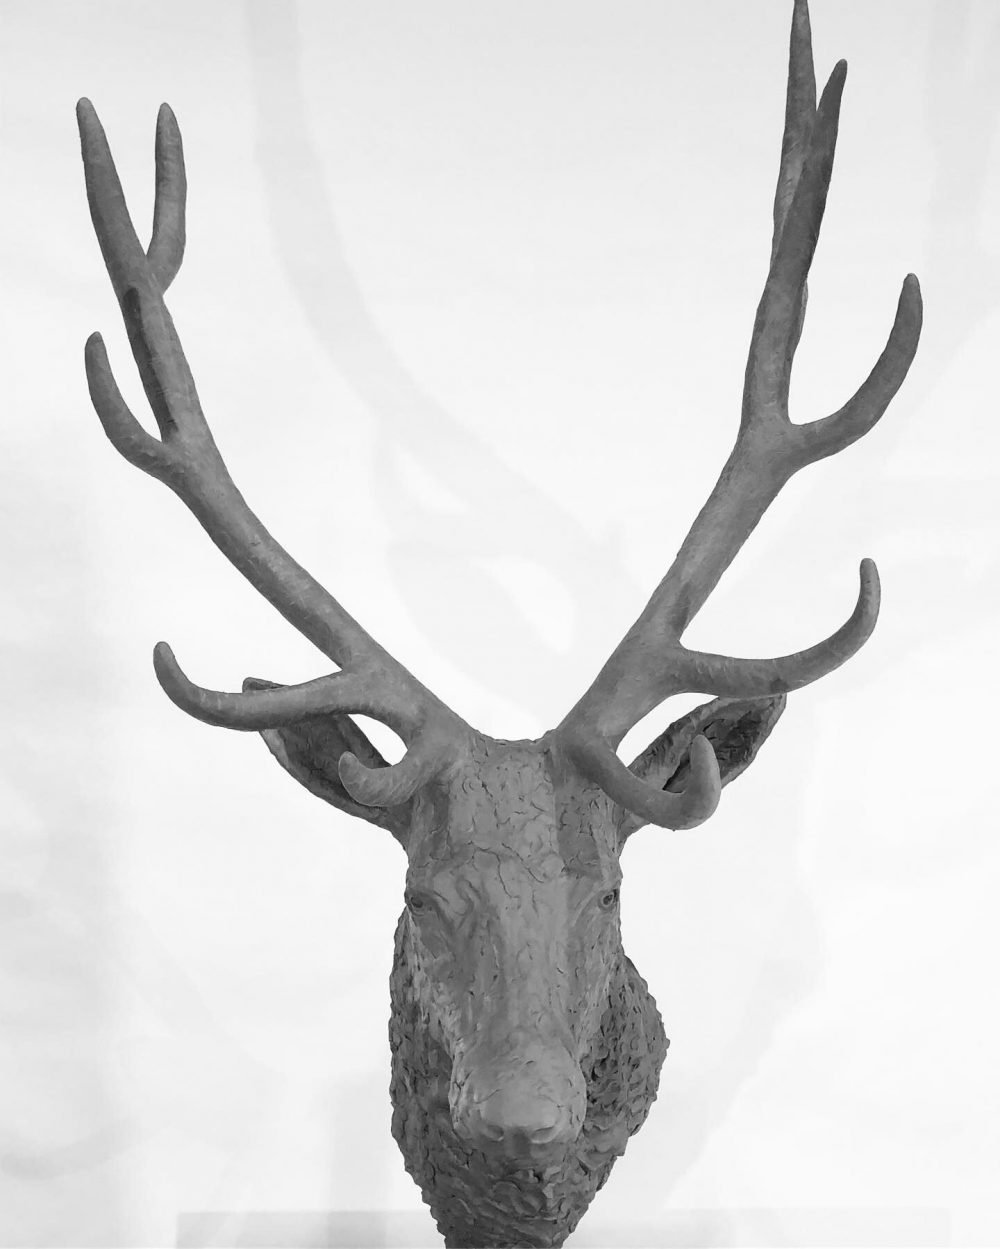 stag head sculpture front view